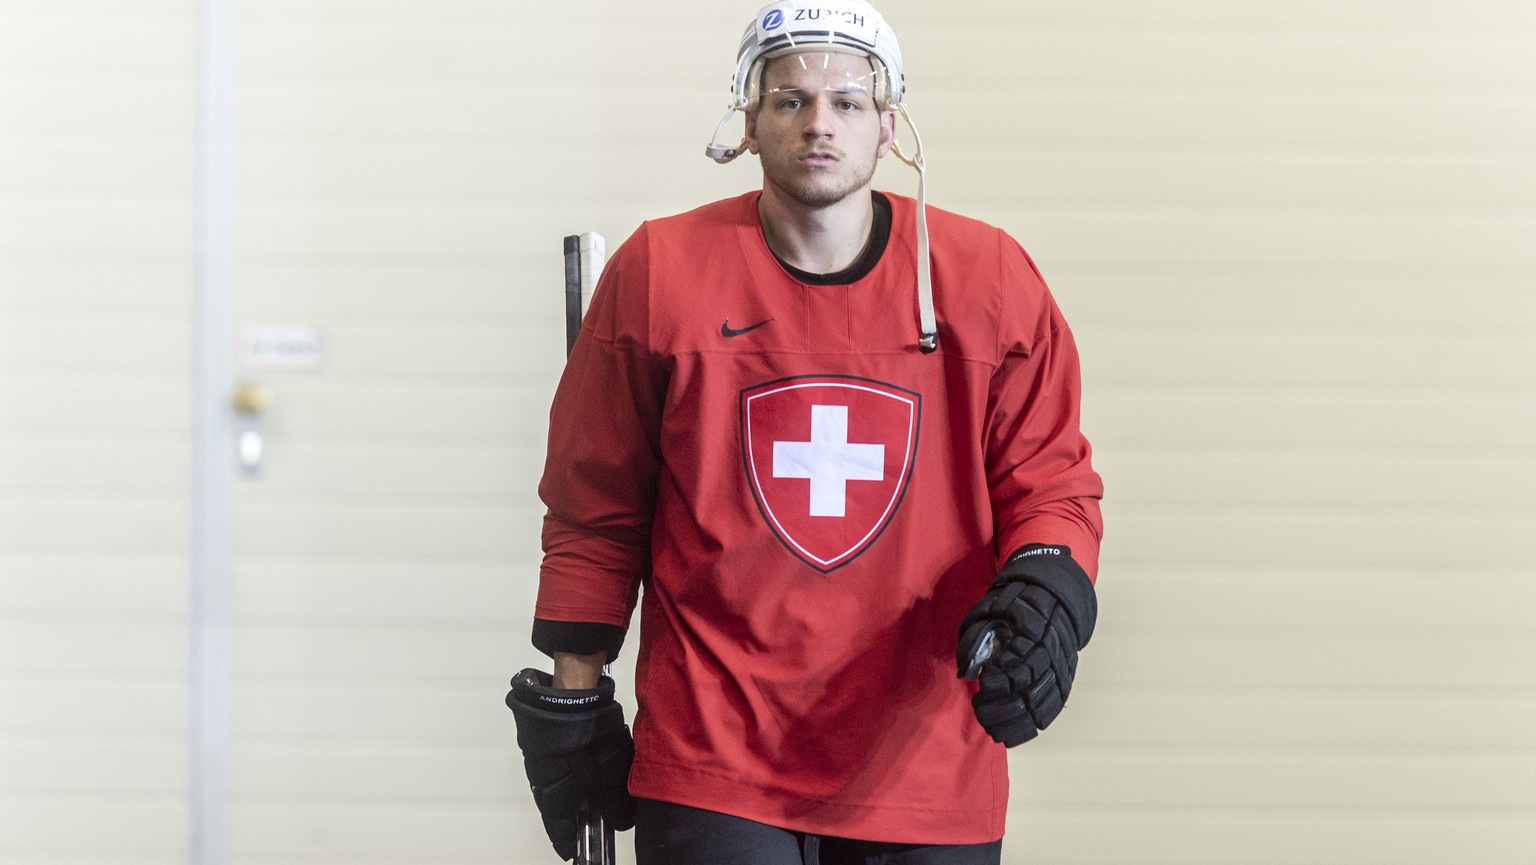 Switzerland`s Sven Andrighetto during a training session of the Swiss team at the IIHF 2019 World Ice Hockey Championships, at the Ondrej Nepela Arena in Bratislava, Slovakia, on Monday, May 13, 2019. (KEYSTONE/Melanie Duchene)